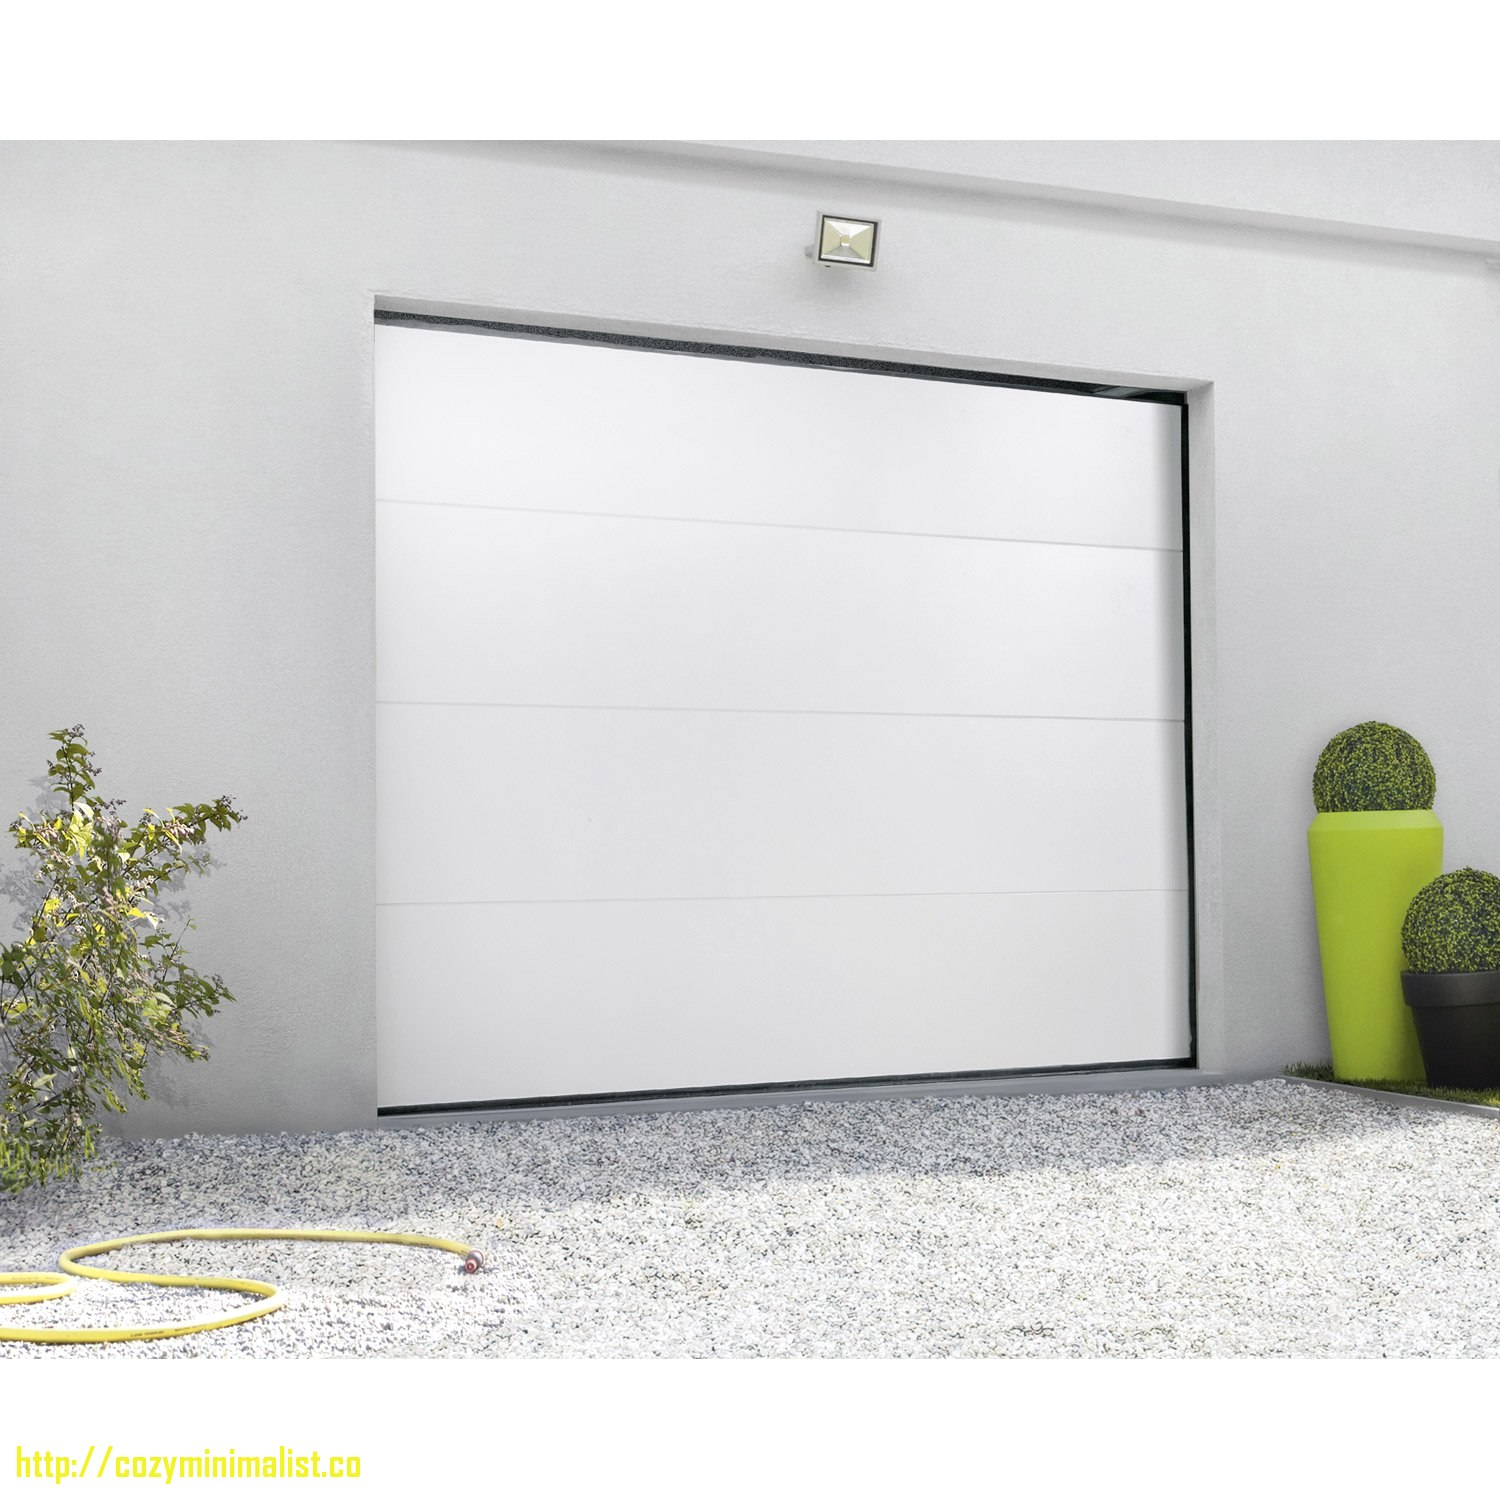 Porte de garage sectionnelle motoris e lapeyre isolation - Porte de garage sectionnelle motorisee lapeyre ...